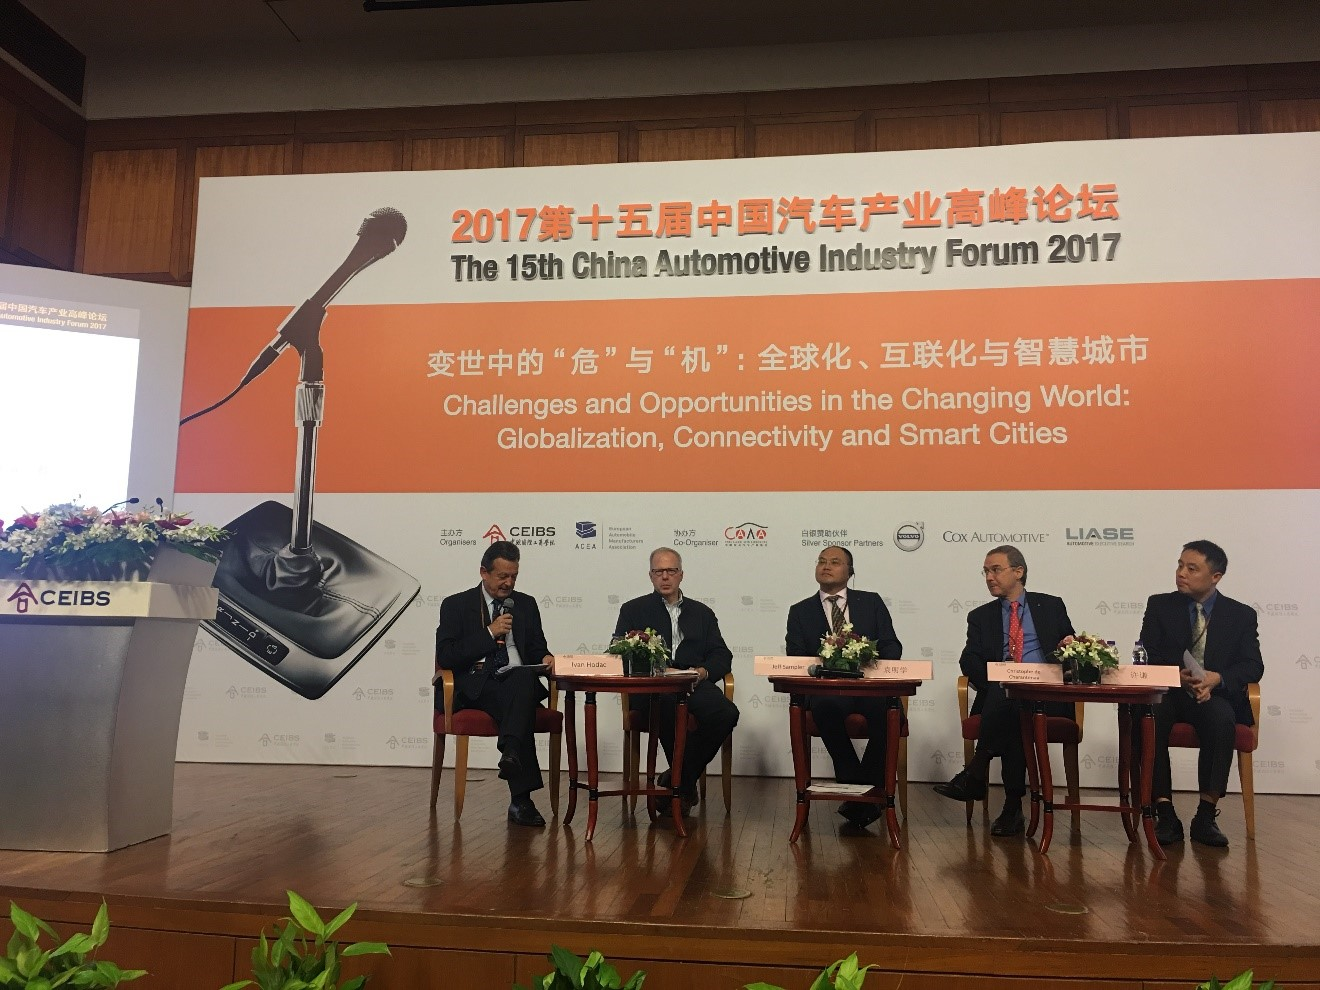 Left to right: Mr. Ivan Hodac, Founder and President, Aspen Institute Prague; Mr. Jeffrey Sampler, Adjunct Professor of Management, CEIBS; Mr. Yuan Mingxue, Vice President, Changan Automobile; Mr. Christophe de Charantenay, Managing Director, Renault (Beijing) Automotive Co. Ltd., Vice President, Chinese Business Office of Renault China; Mr. Xu Qian, Director of AlixPartners, Head of Automotive Practice for Greater China.